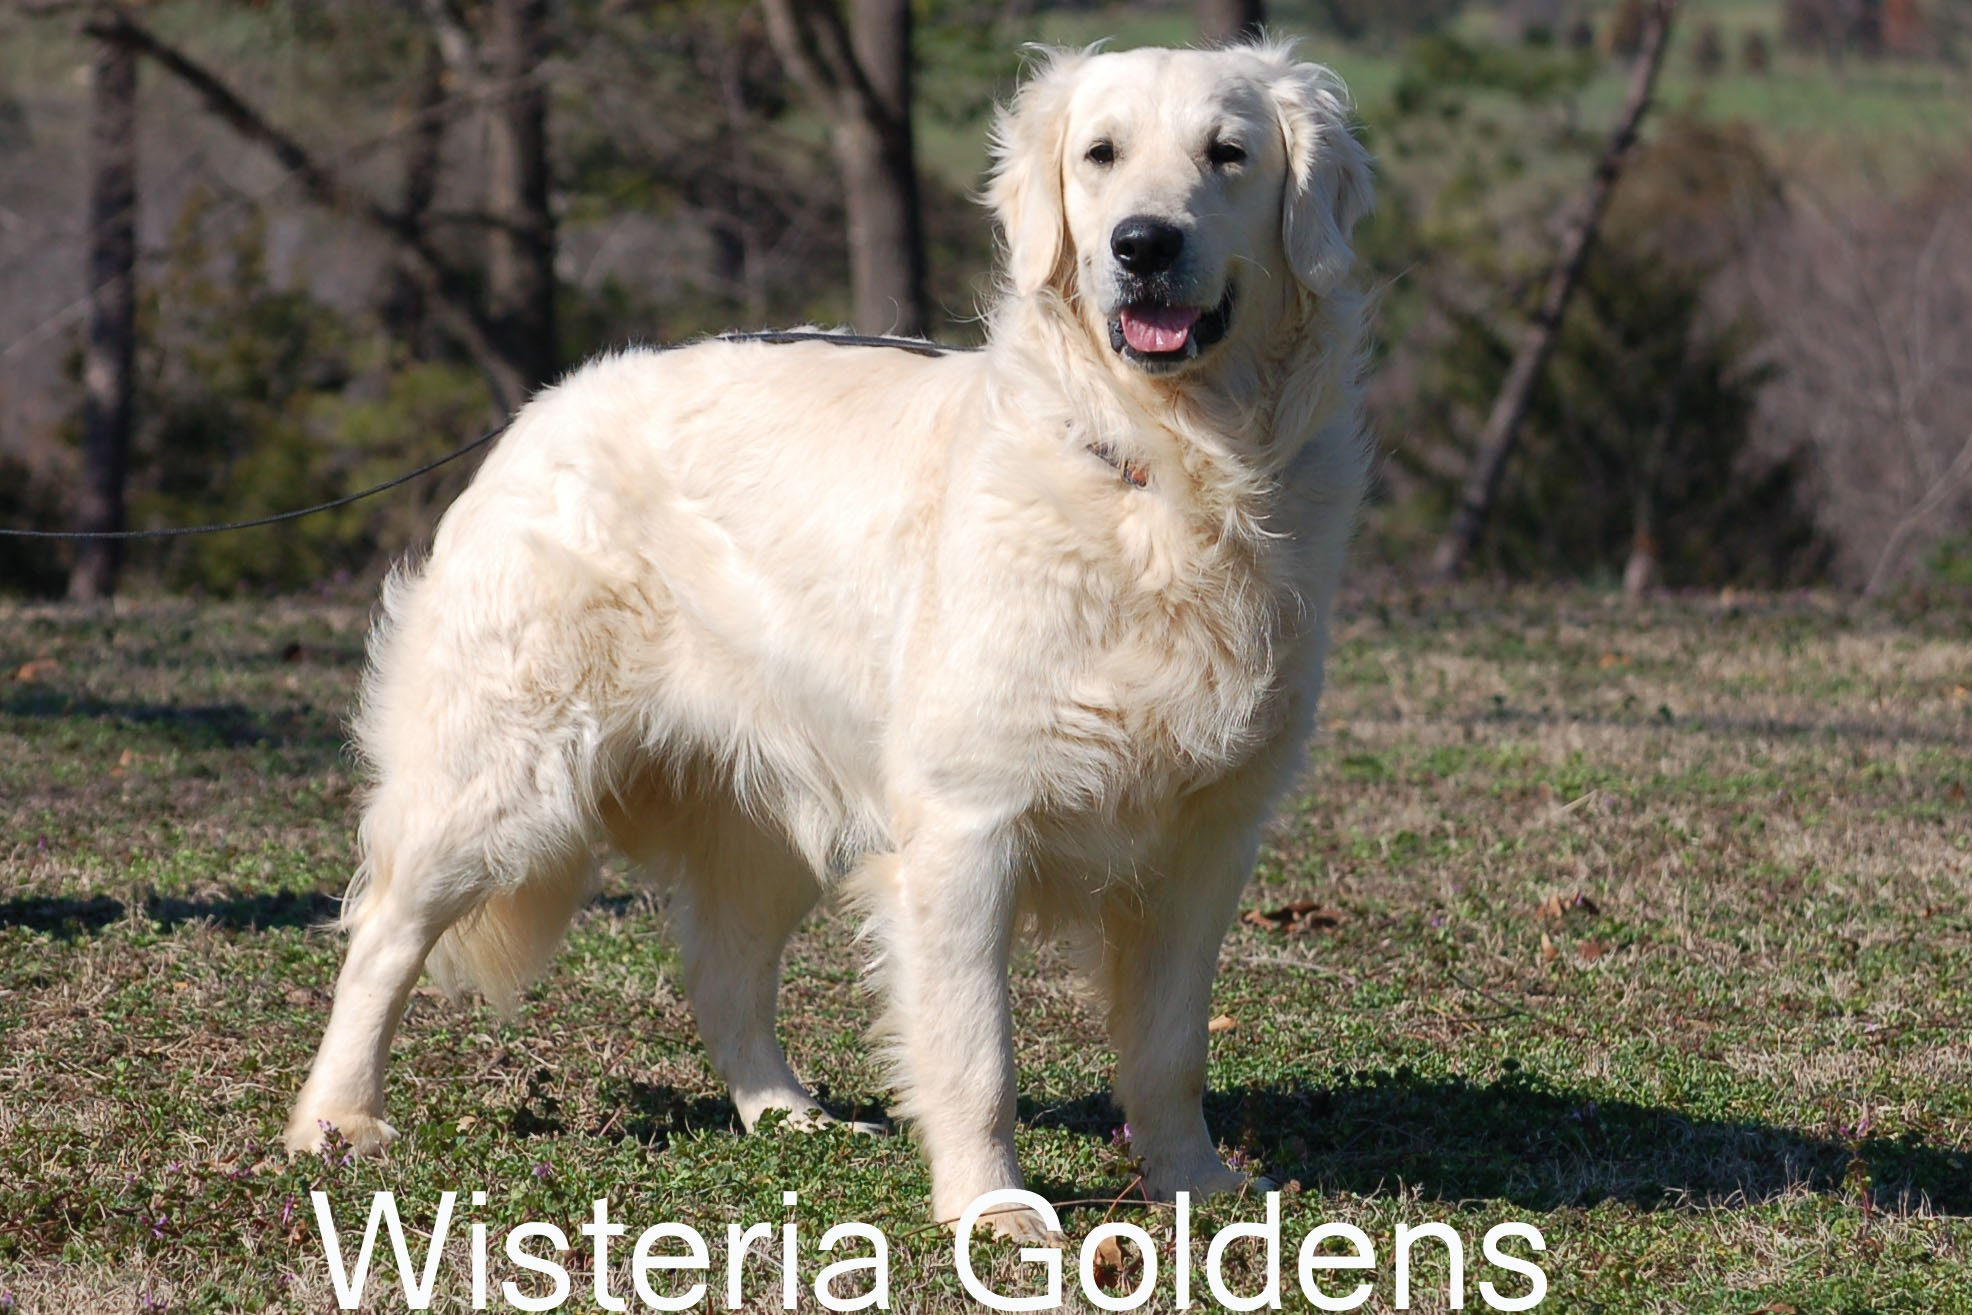 Tru_0510-Tru-full-english-cream-golden-retriever-wisteria-goldens.JPG